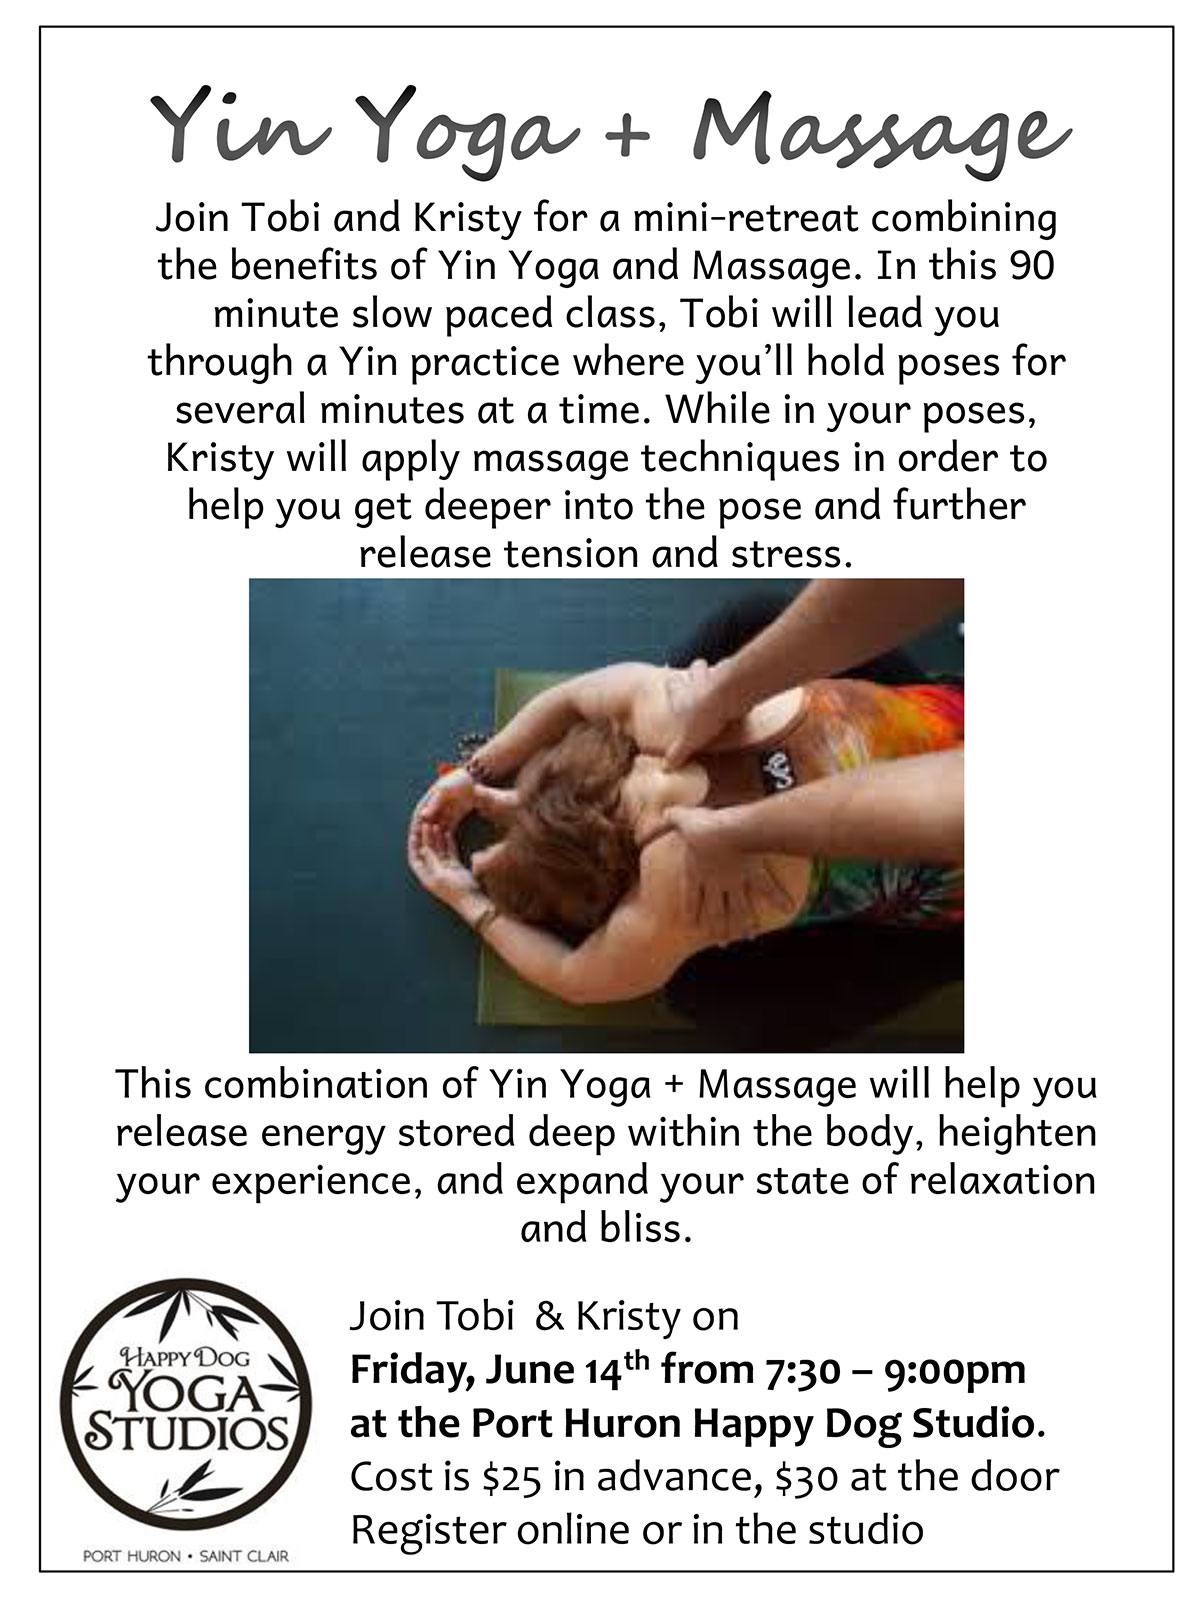 Yin Yoga + Massage